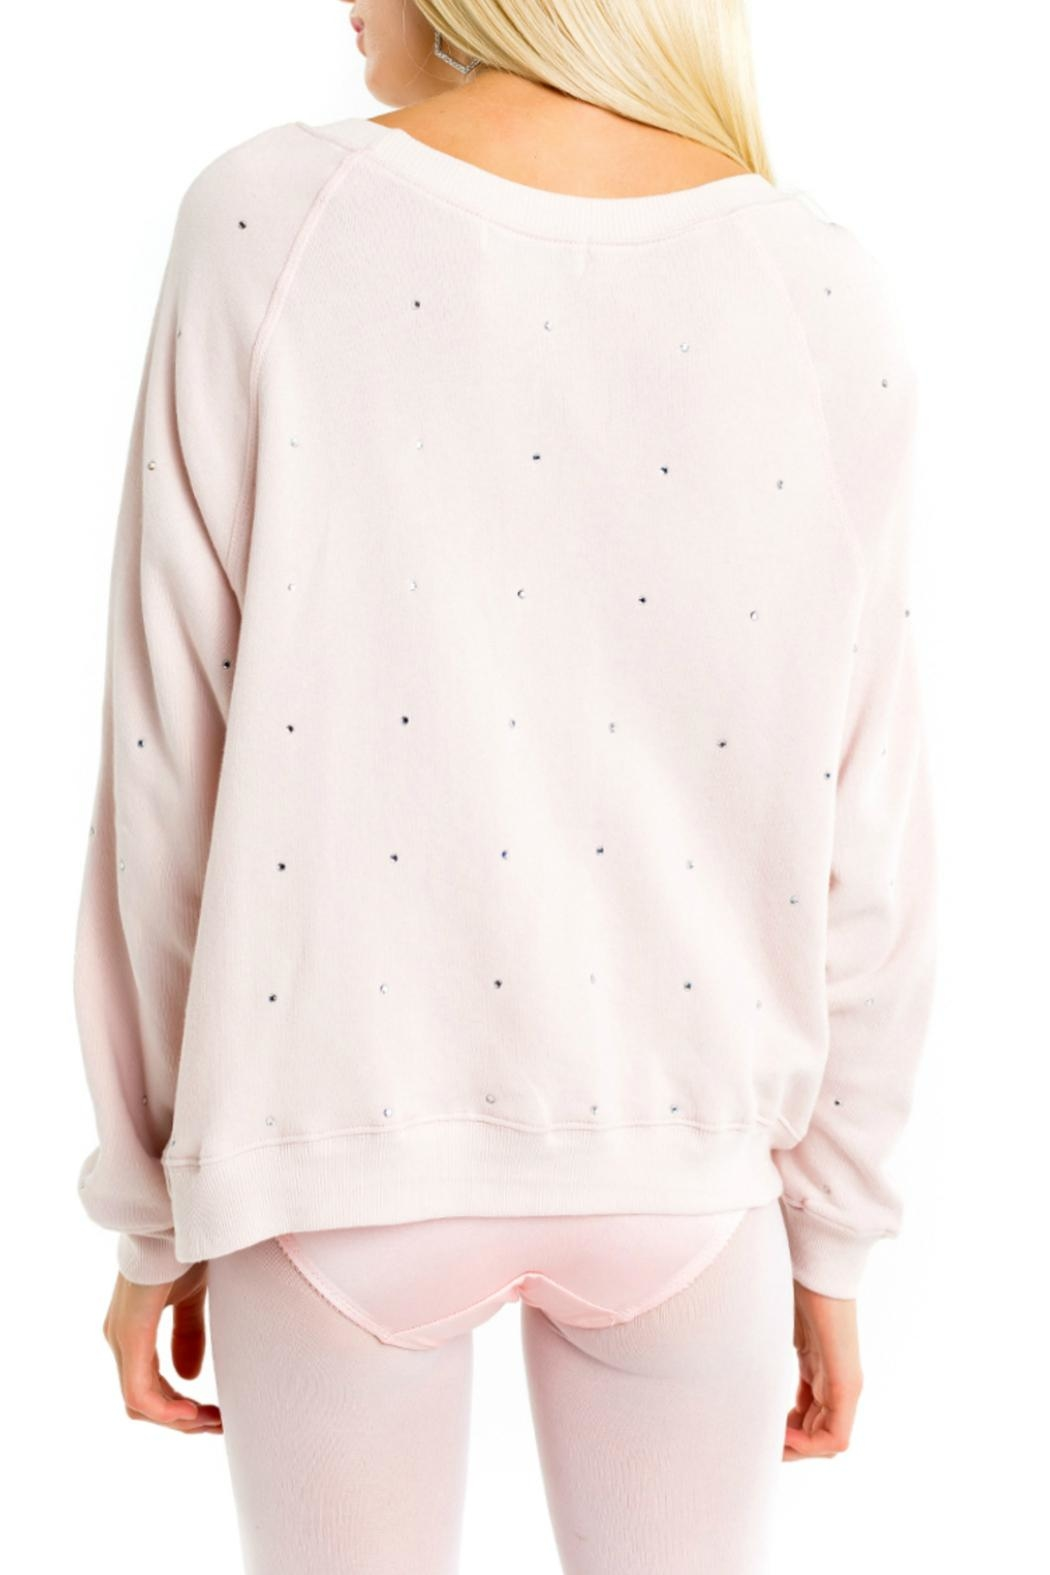 Wildfox All-Over-Glitz Sweatshirt - Side Cropped Image